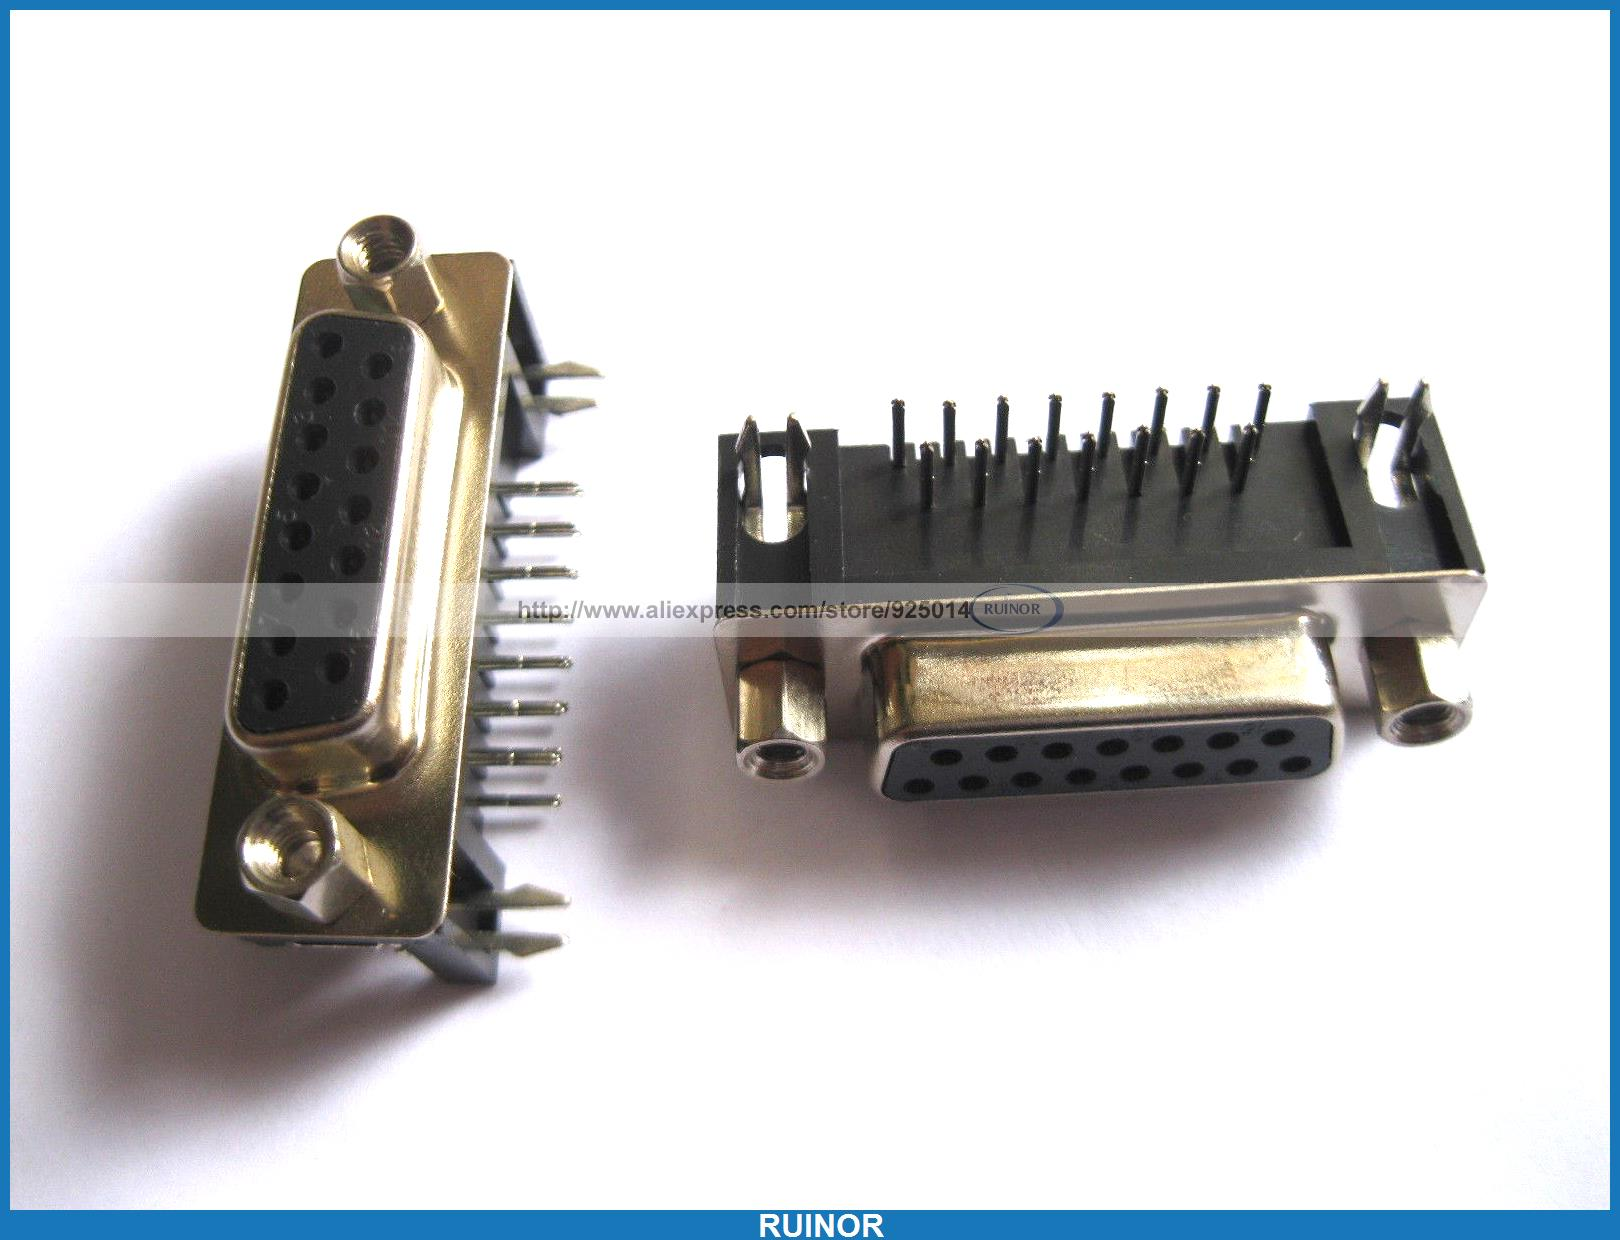 50 Pcs D Sub 15 Pin Female Connector Right Angle 2 Rows 30 pcs d sub 9 pin male connector with right angle